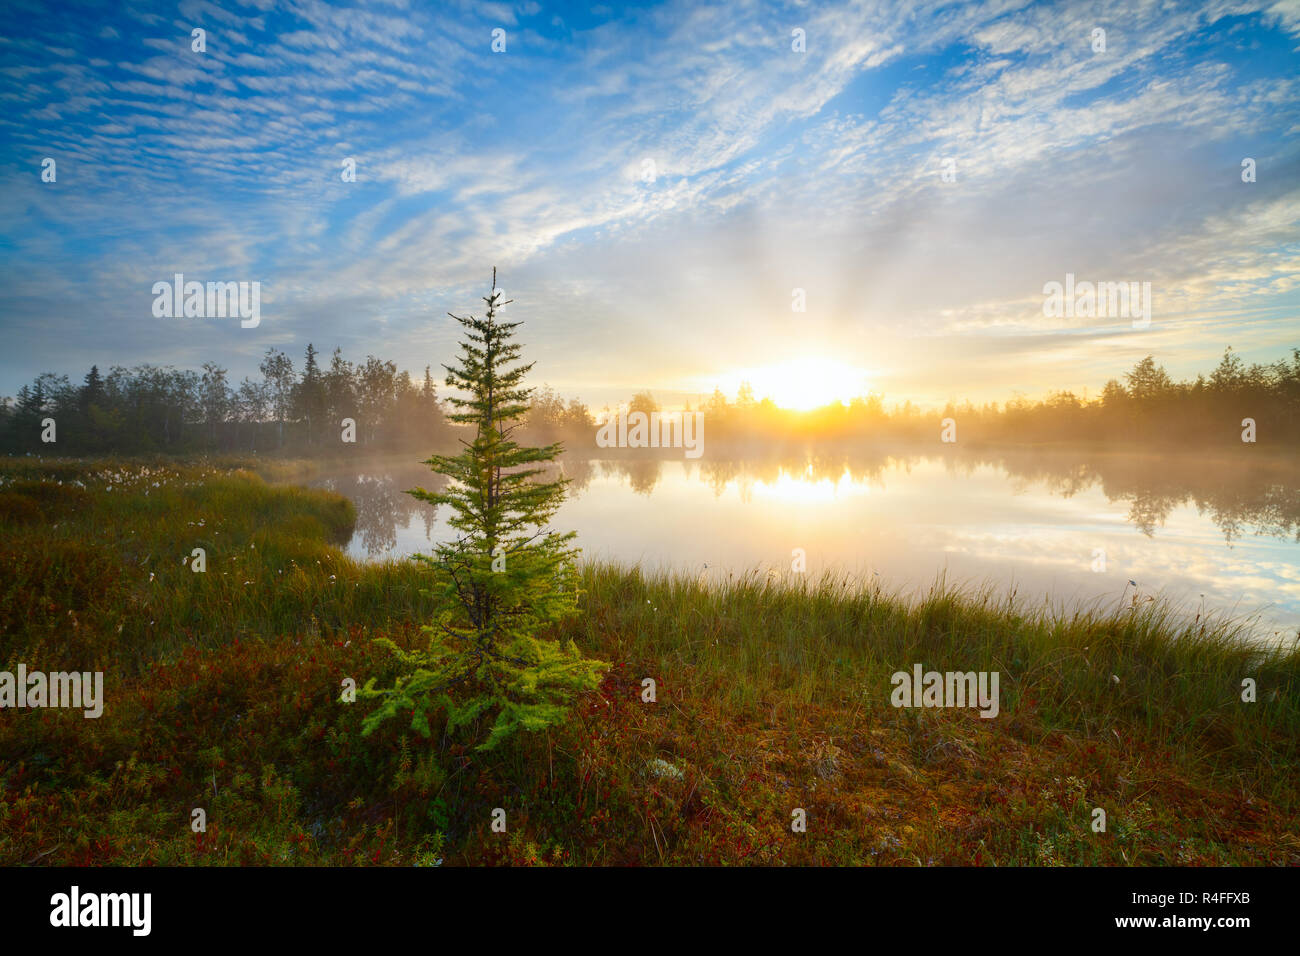 beautiful bright dawn sunrise sunset tundra forest wild lake spruce foreground red sun beam ray through fog reflection white clouds - Stock Image